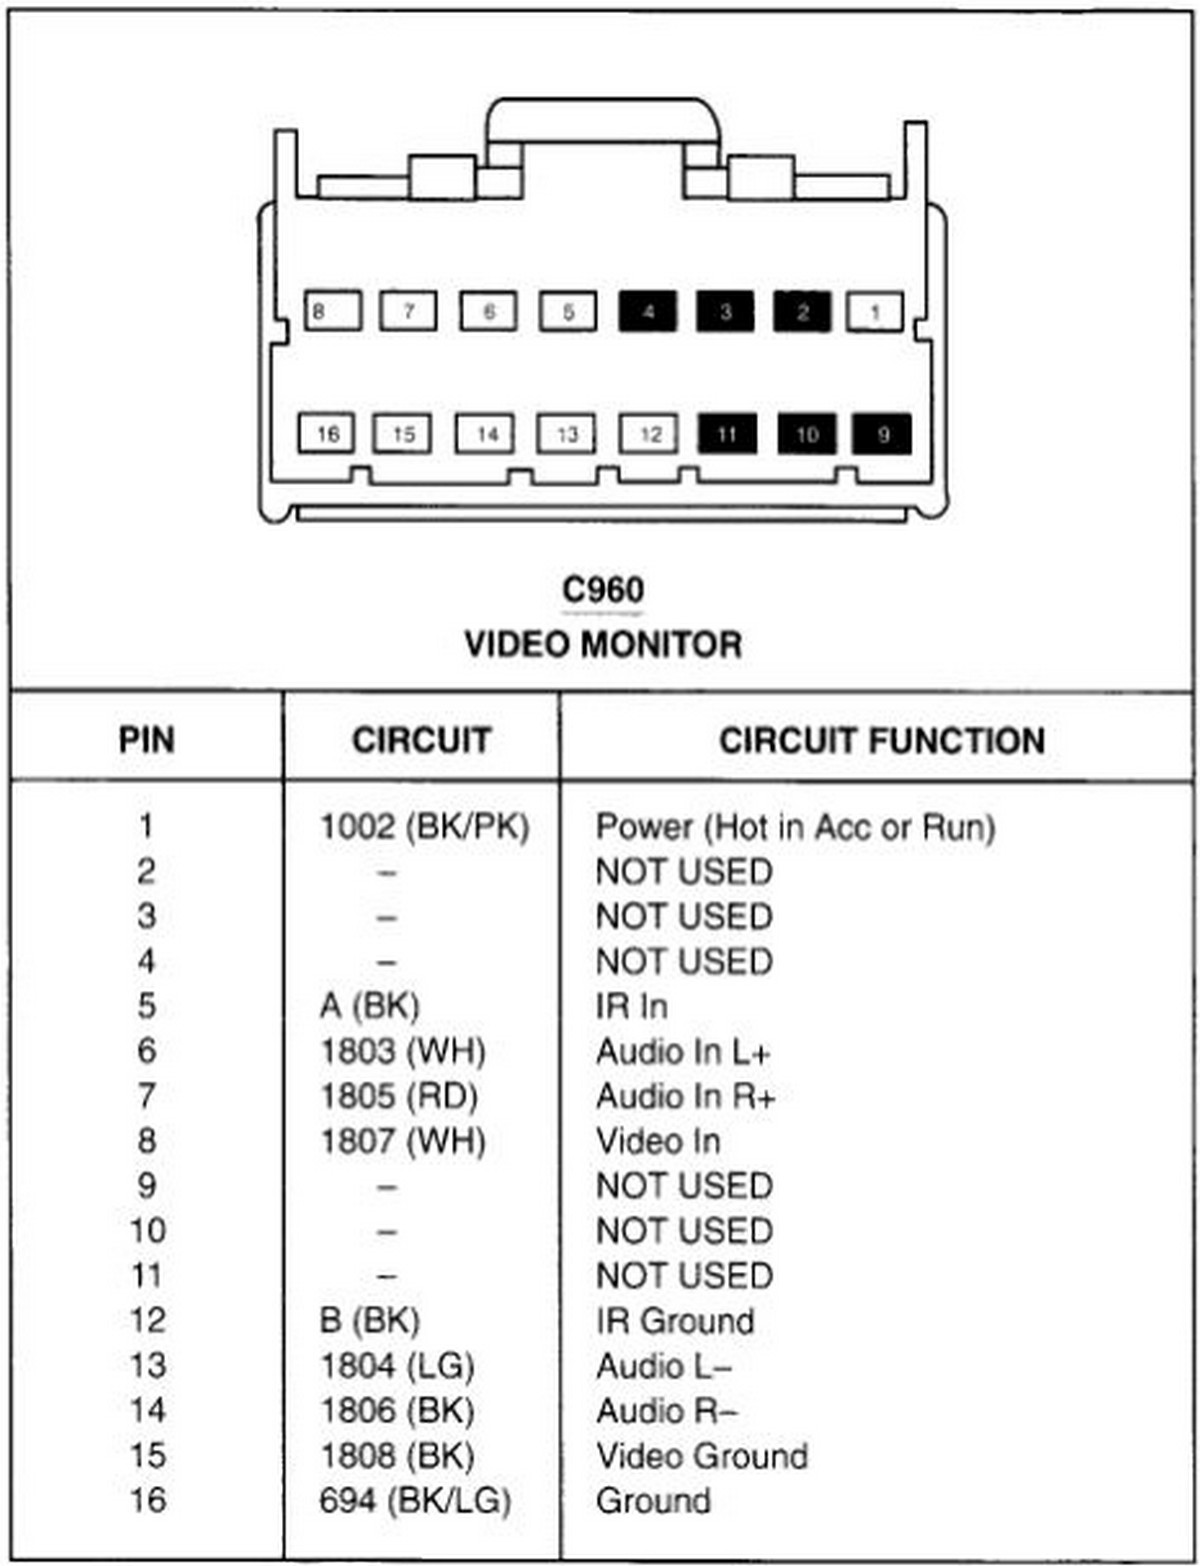 Ford Car Radio Stereo Audio Wiring Diagram Autoradio Connector Wire 2007 Expedition Installation Schematic Schema Esquema De Conexiones Stecker Konektor Connecteur Cable